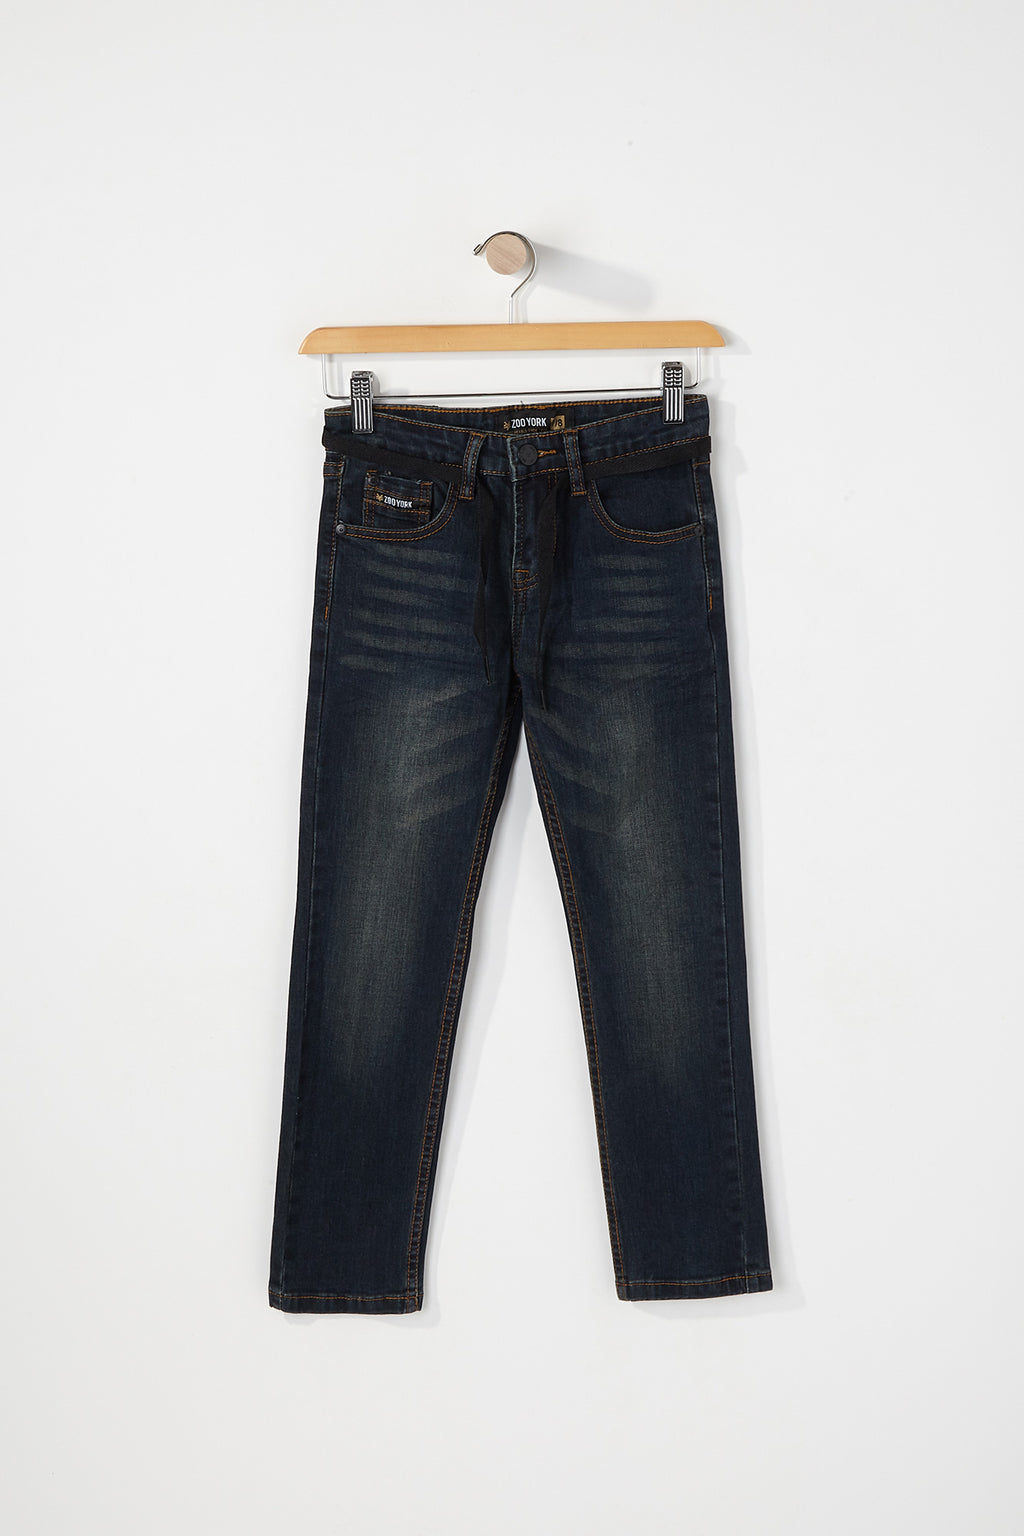 Zoo York Boys Dark Wash Skinny Jeans